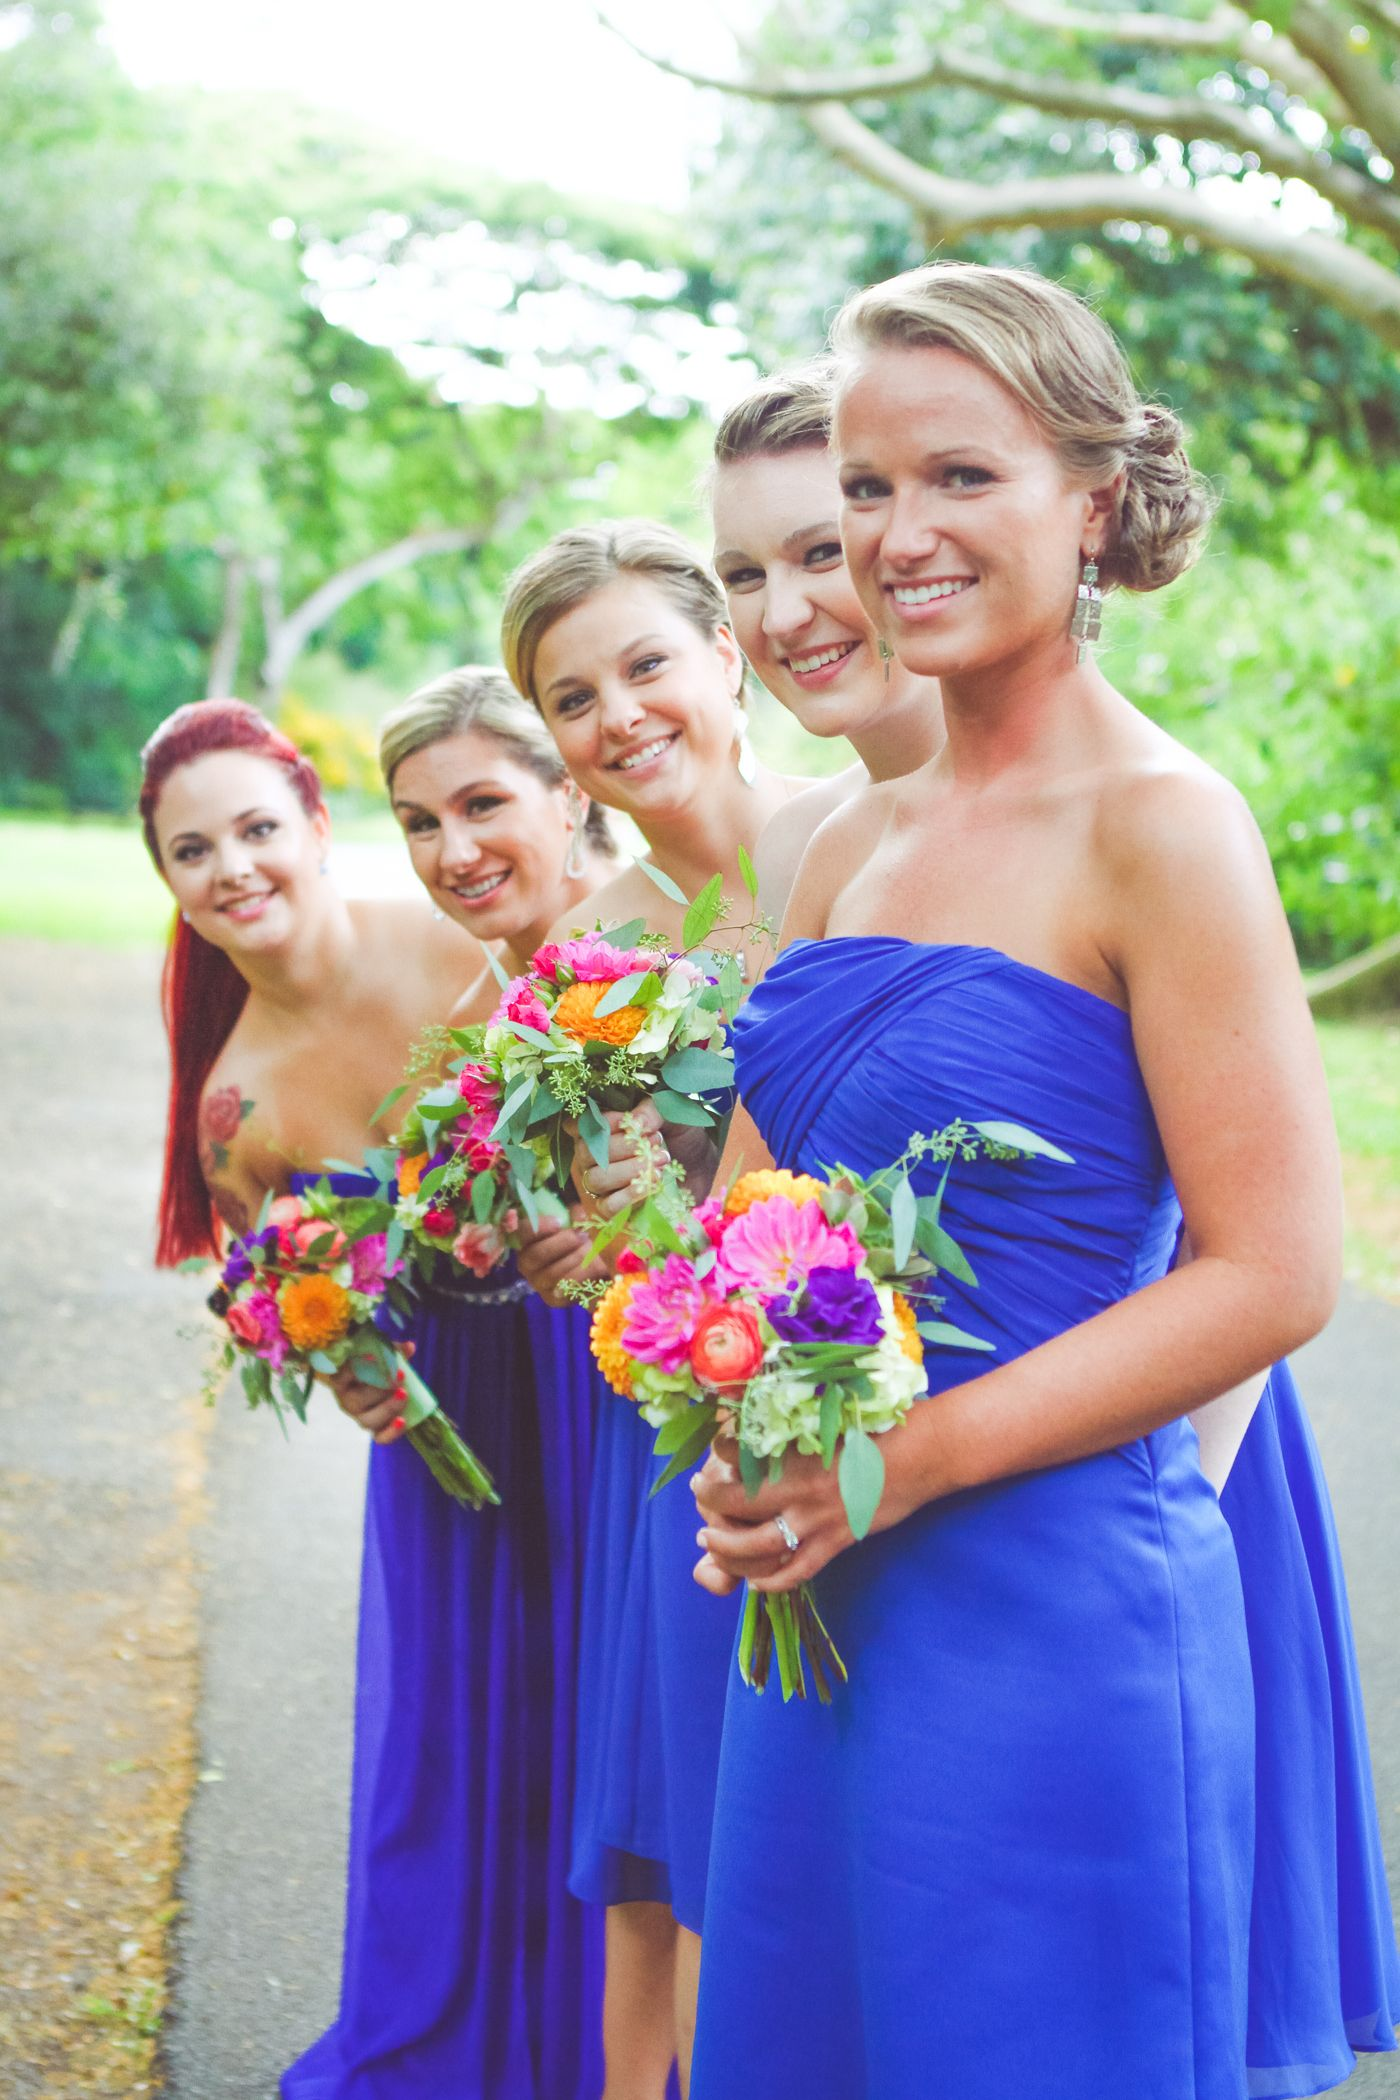 Bright blue strapless bridesmaid dresses and colorful tropical bright blue strapless bridesmaid dresses and colorful tropical bouquets ombrellifo Gallery